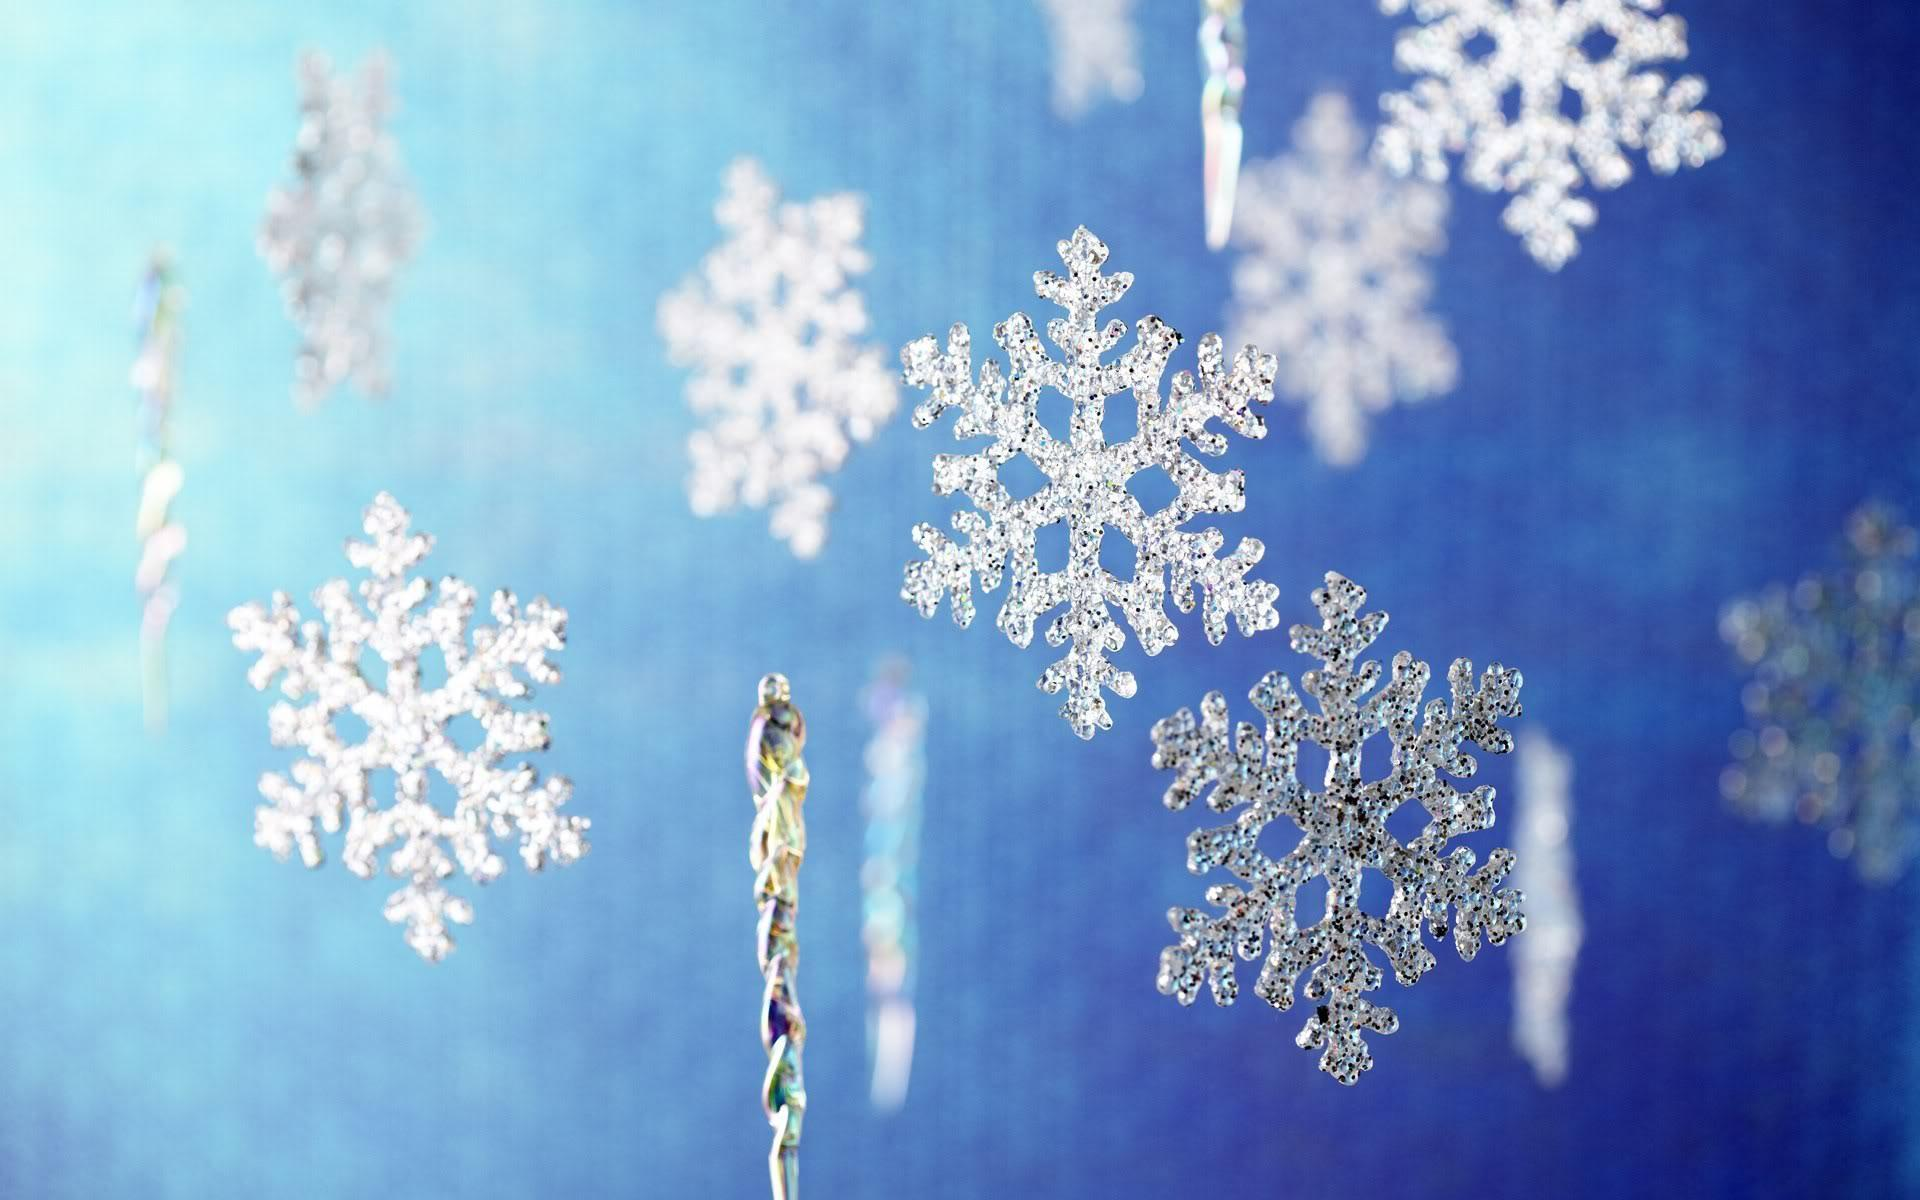 Snowflake Desktop Backgrounds Group 1920x1200